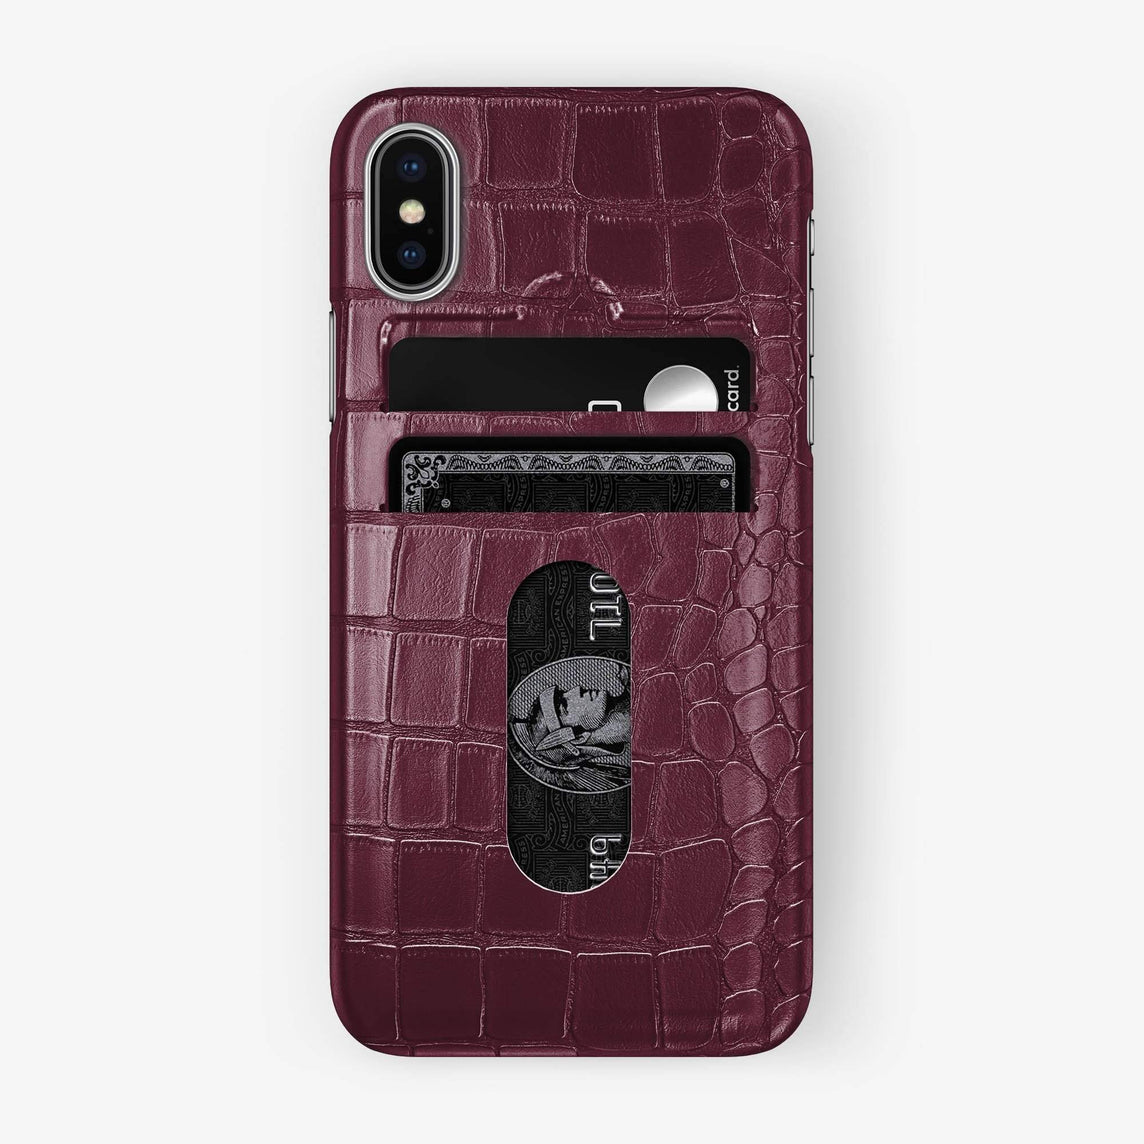 Alligator Card Holder Case iPhone Xs Max | Burgundy - Stainless Steel - Hadoro